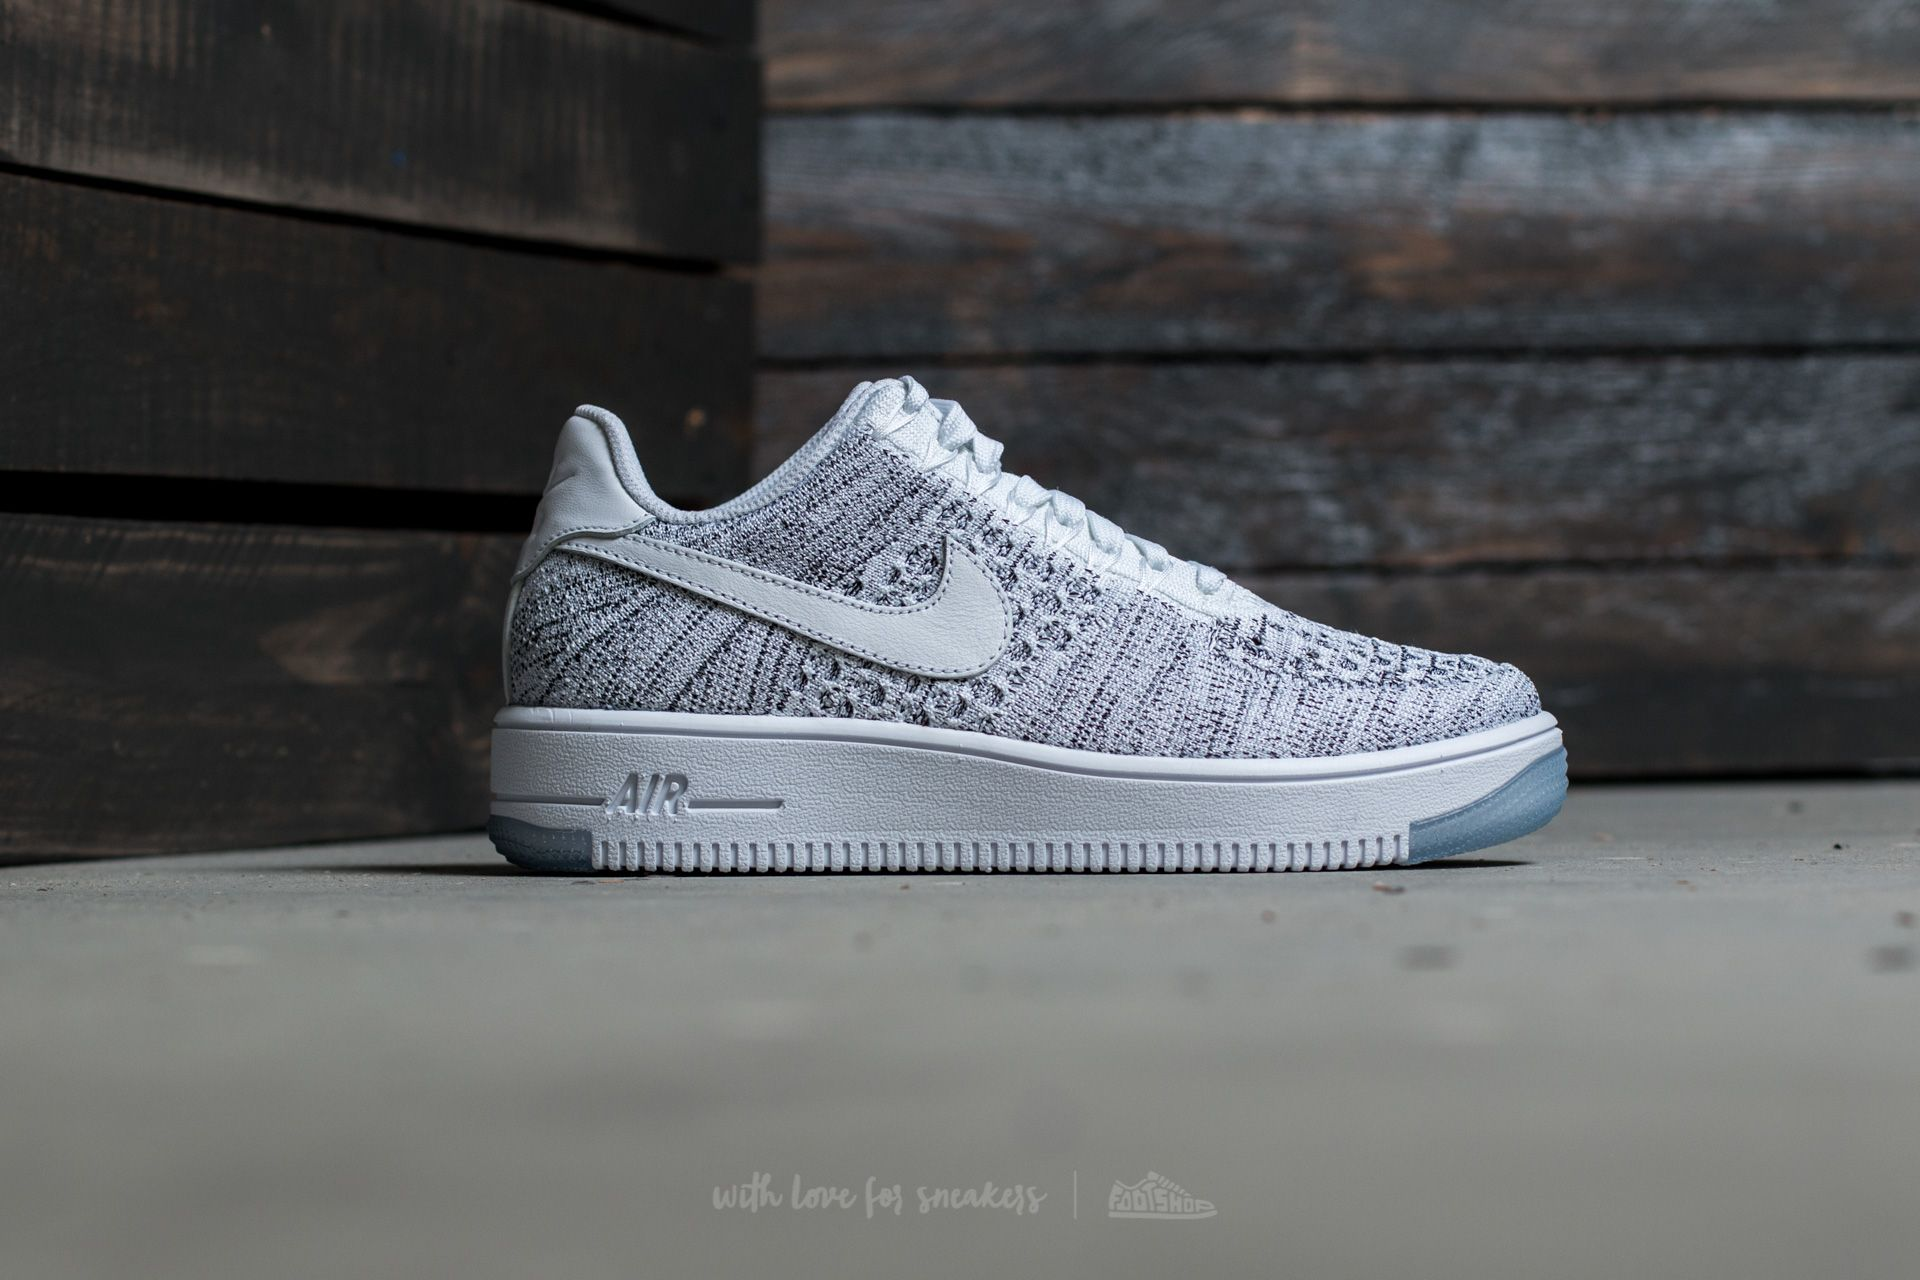 new styles 3b1e9 ad985 Nike W Air Force 1 Flyknit Low White/ White-Black | Footshop